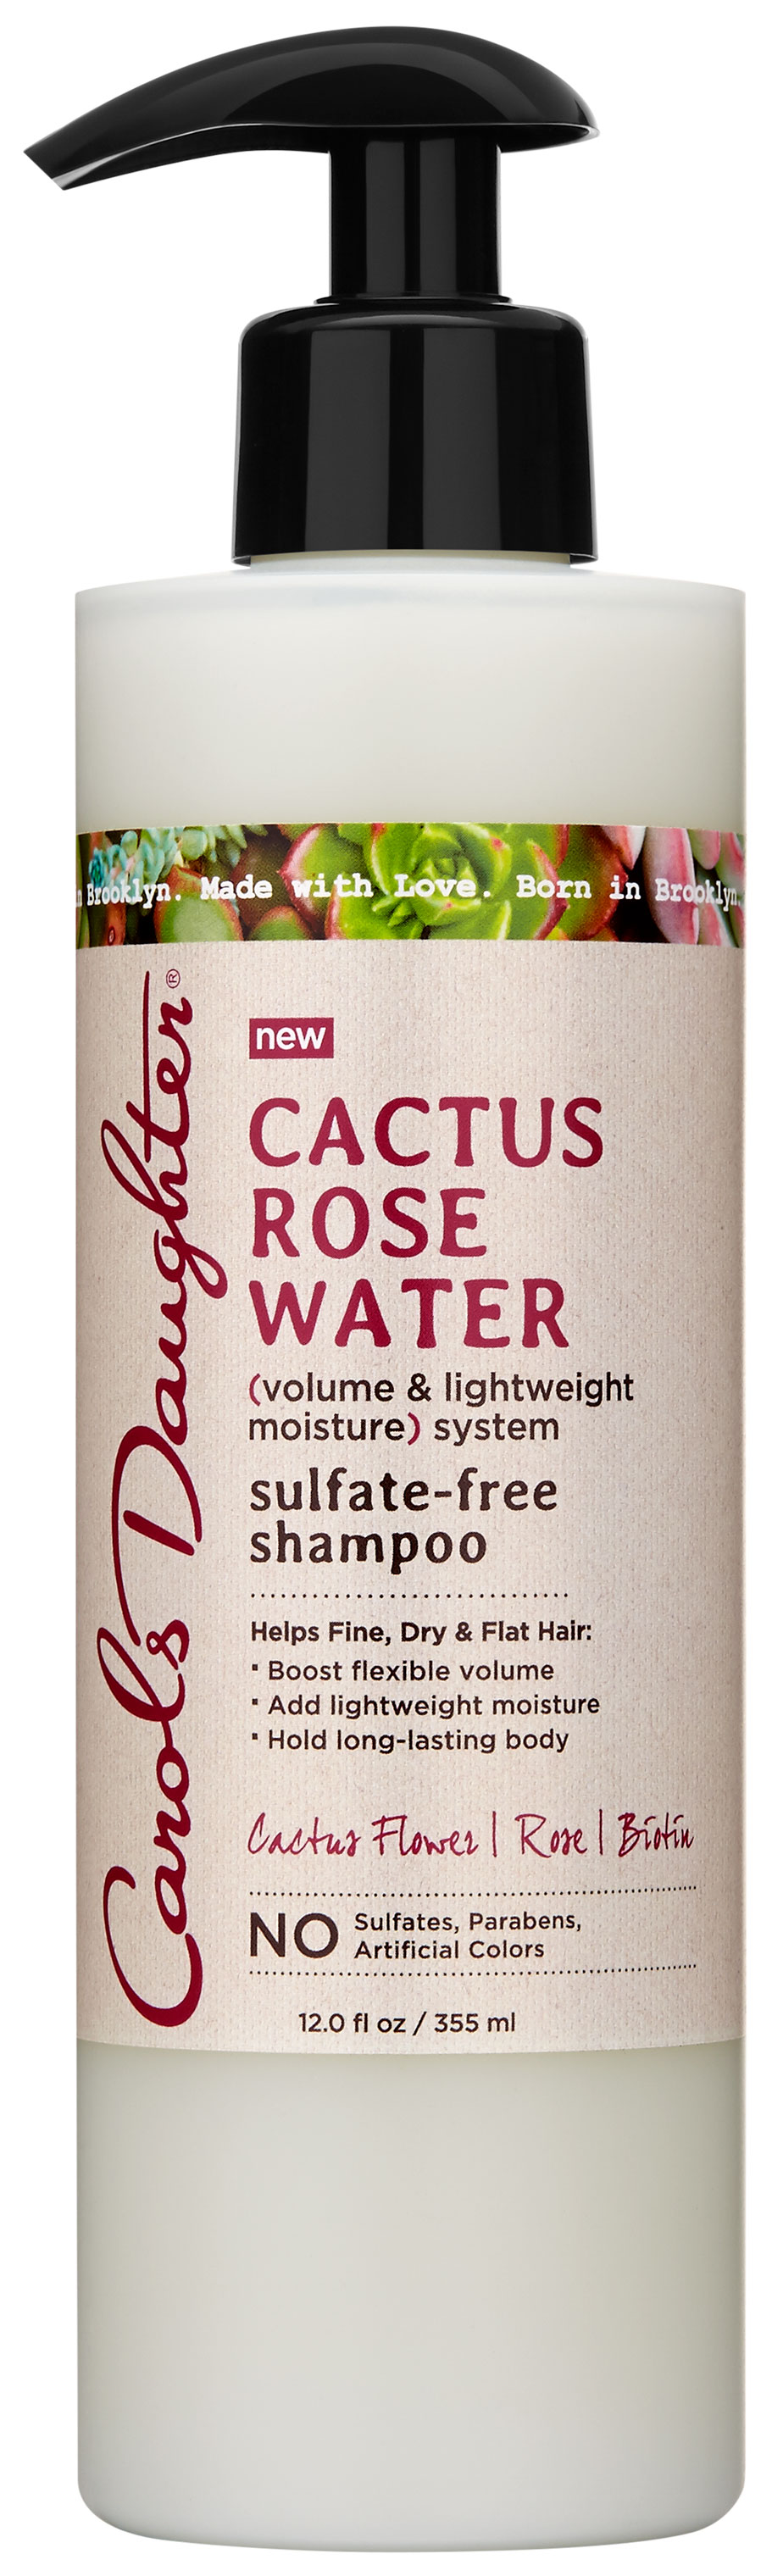 Carol's Daughter Cactus Rose Water Sulfate-Free Shampoo